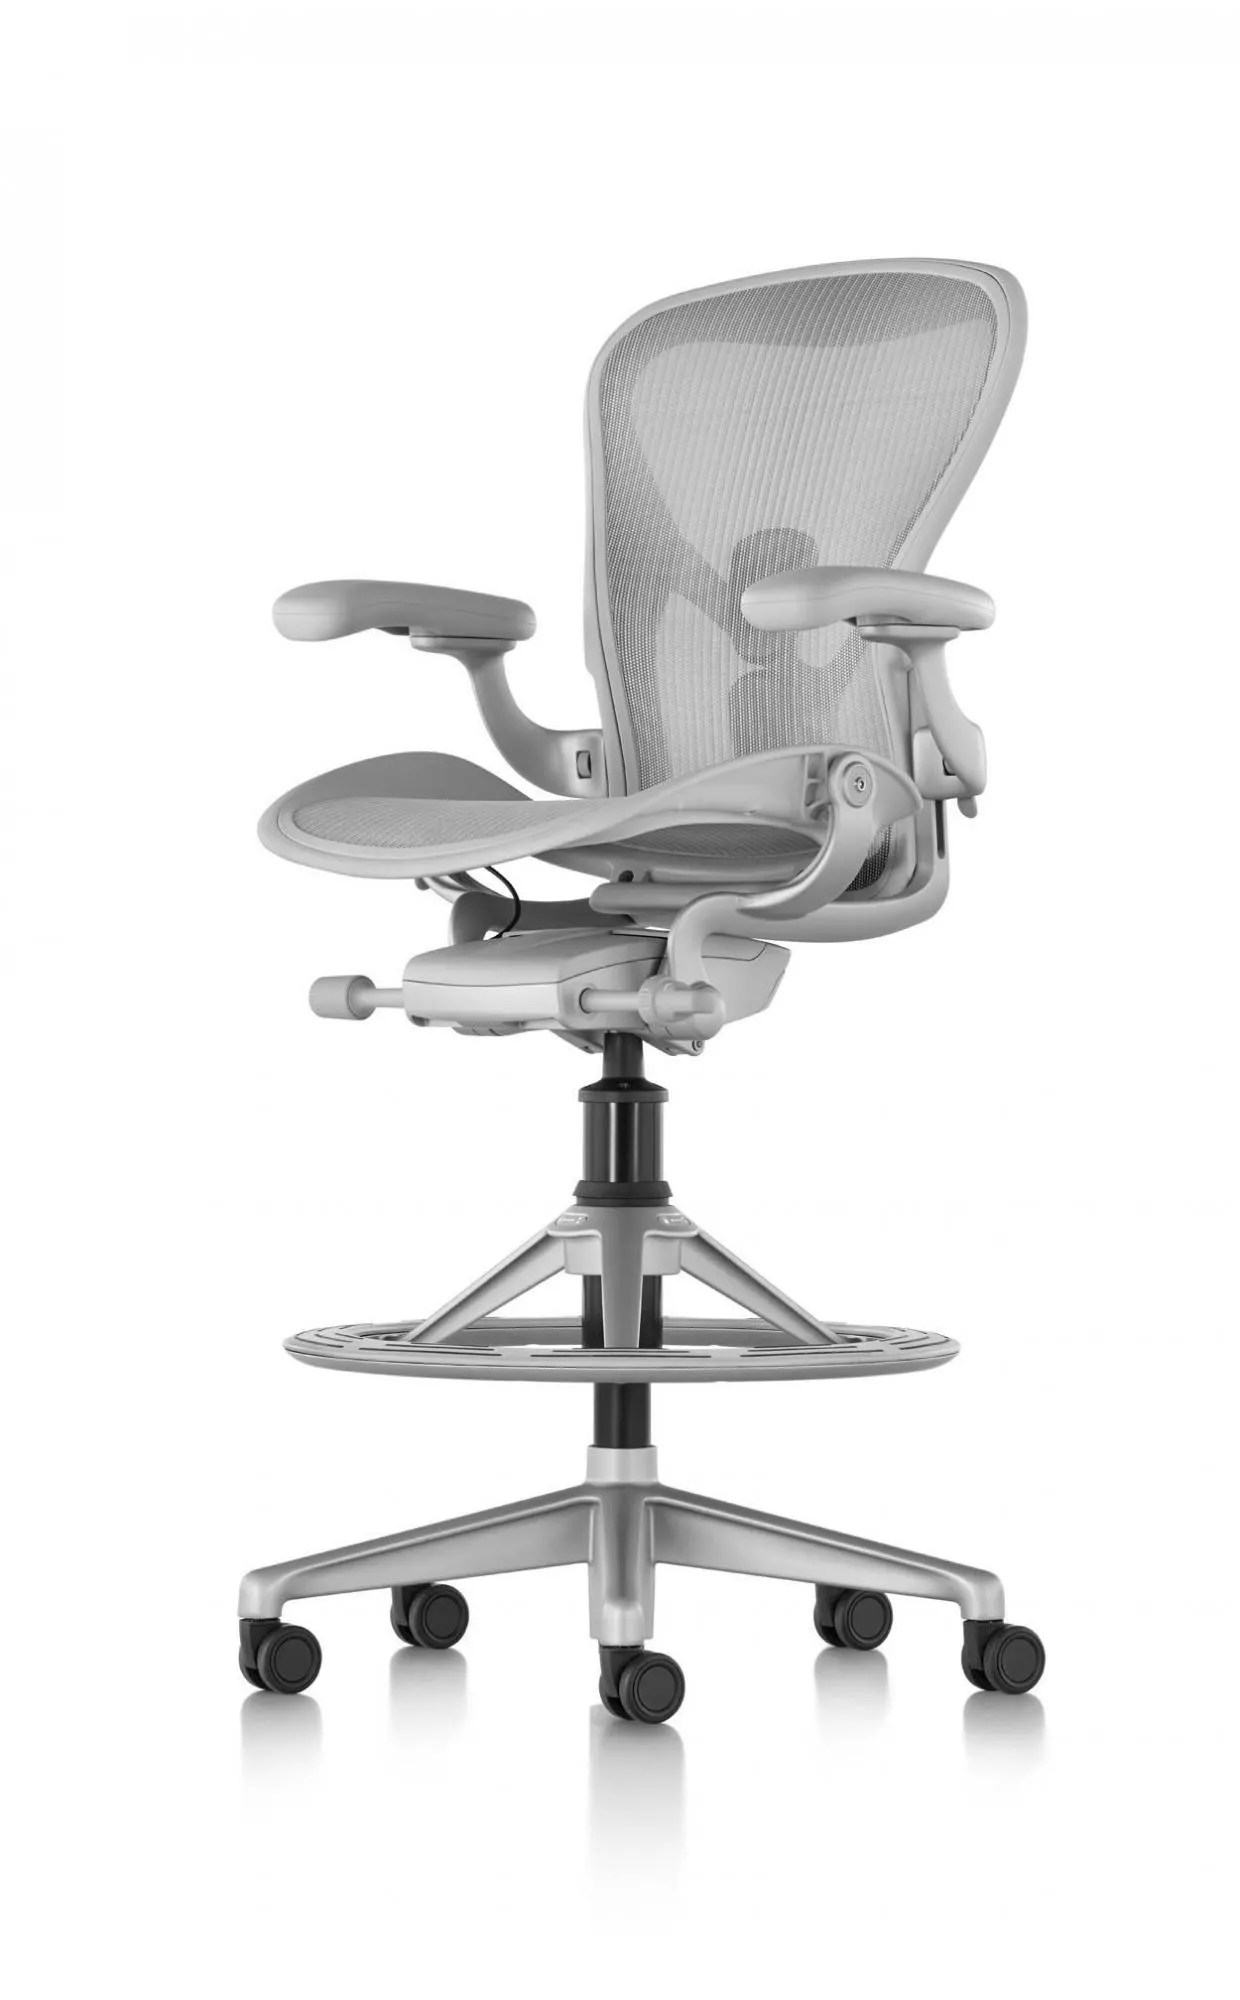 aeron chair canada cane back herman miller stool build your own gr shop